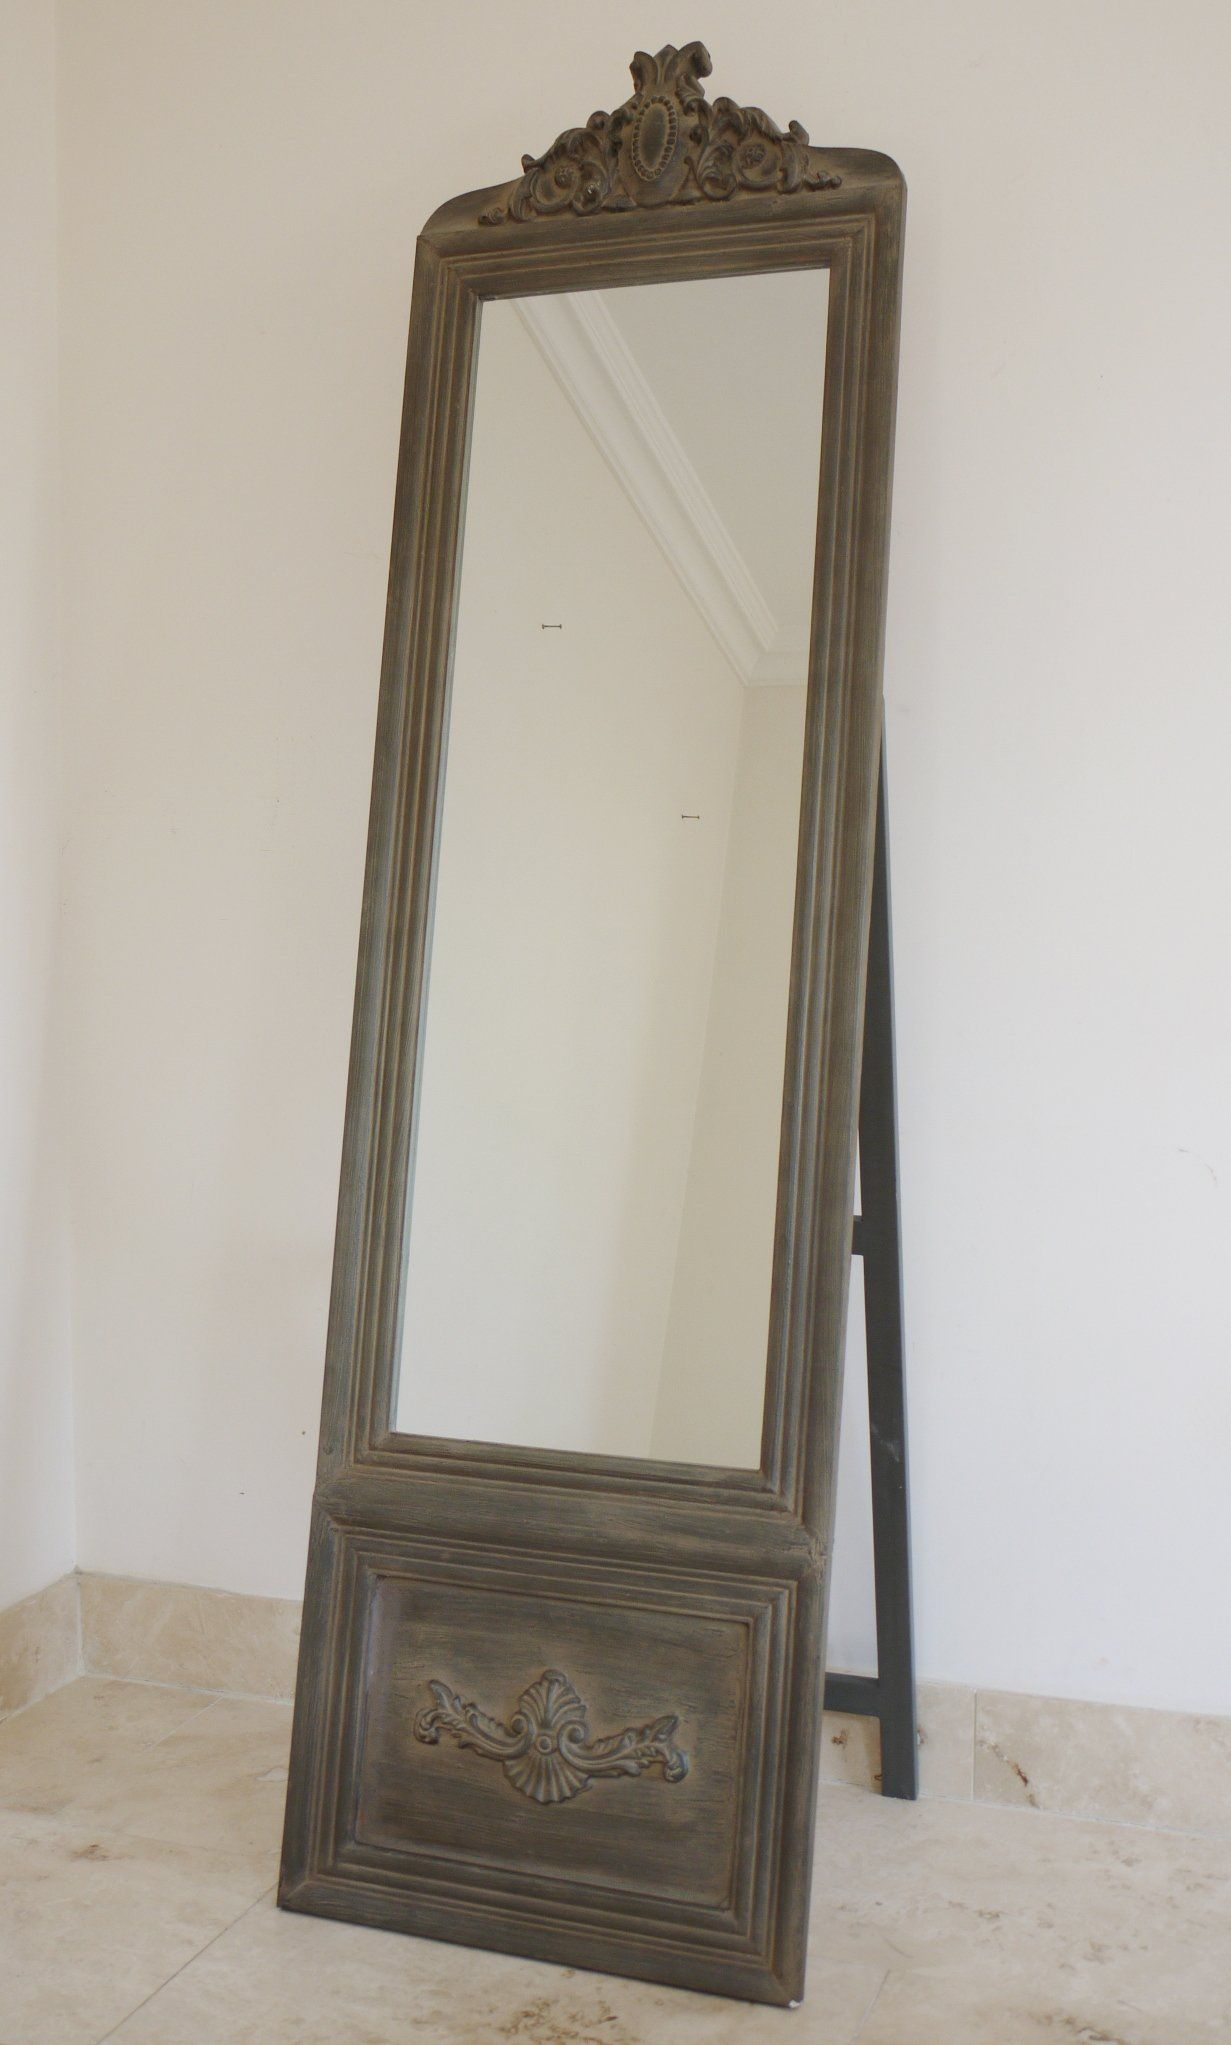 Shop online for Ornate Cheval Mirror Vintage Effect, from Furniture ...